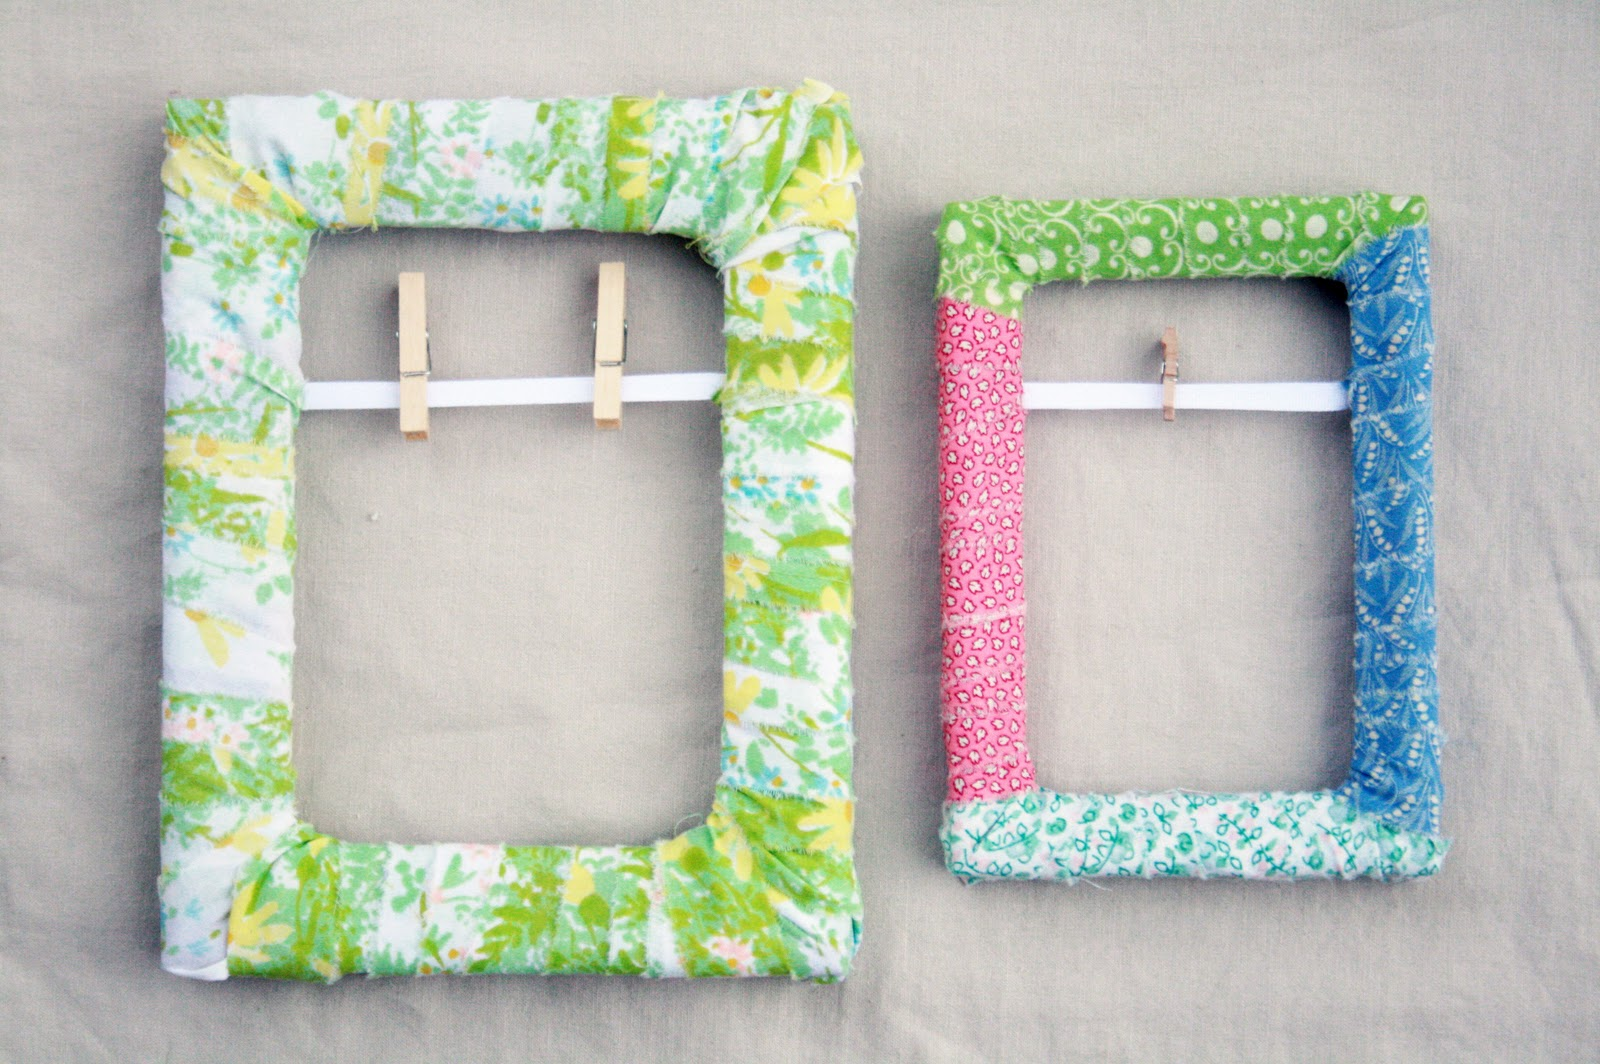 Easy To Make Photo Frames DIY